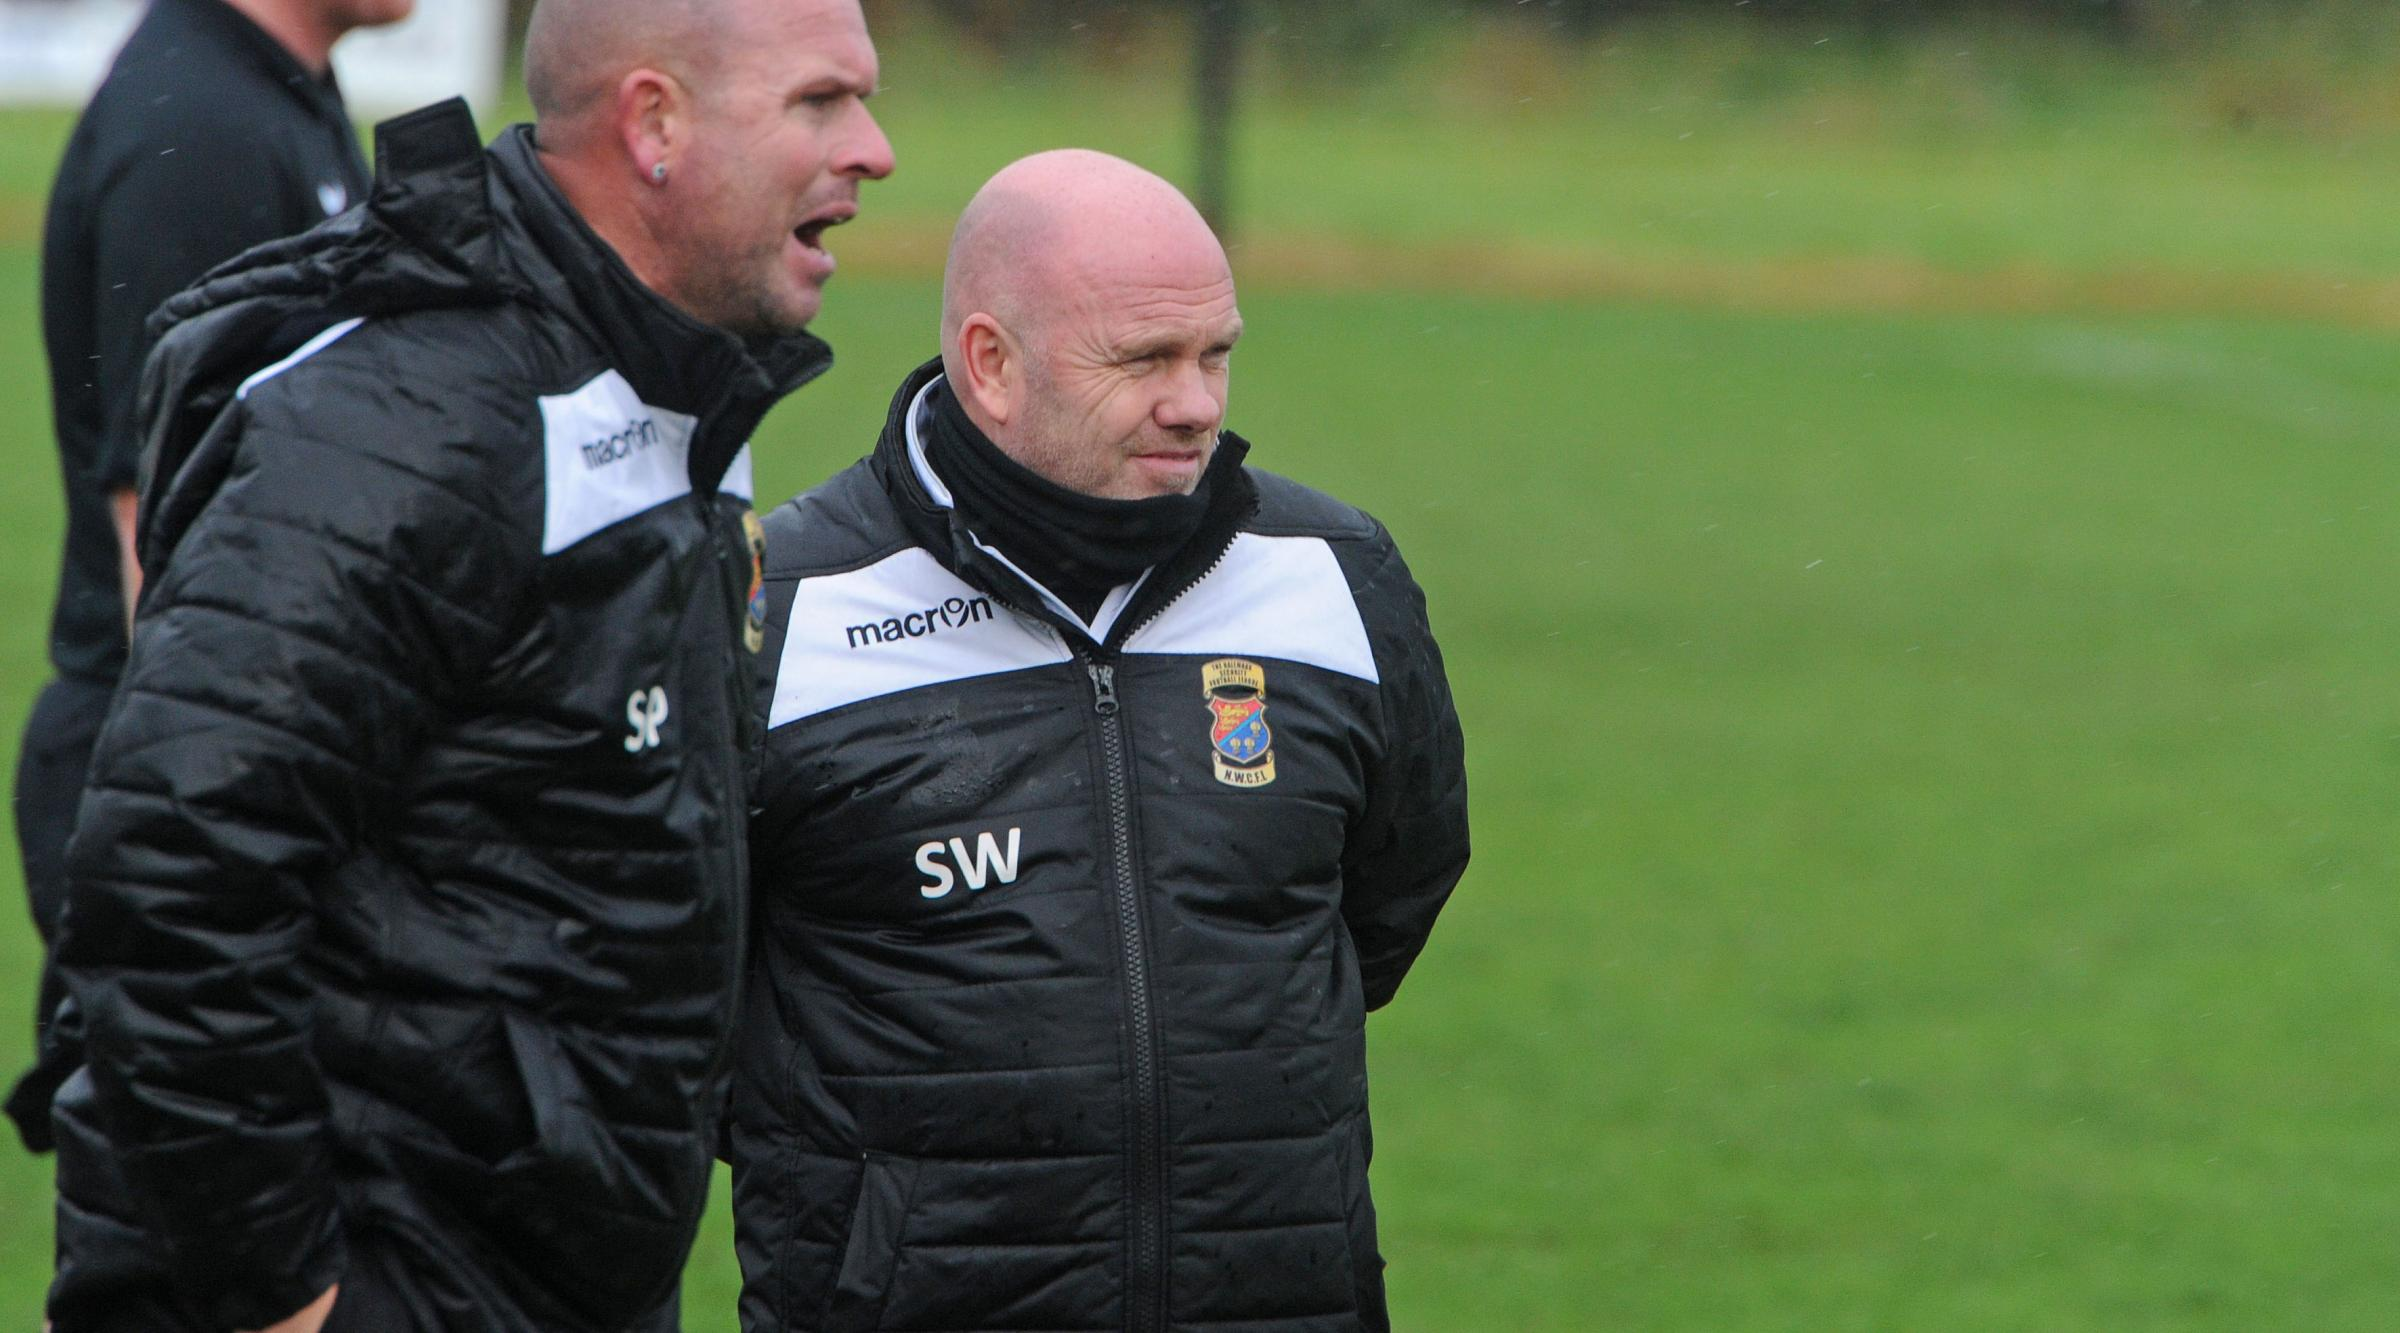 Northwich Victoria's management team, Steve Pickup (left) and Steve Wilkes, hope to put one over on their former club when Padiham visit Townfield